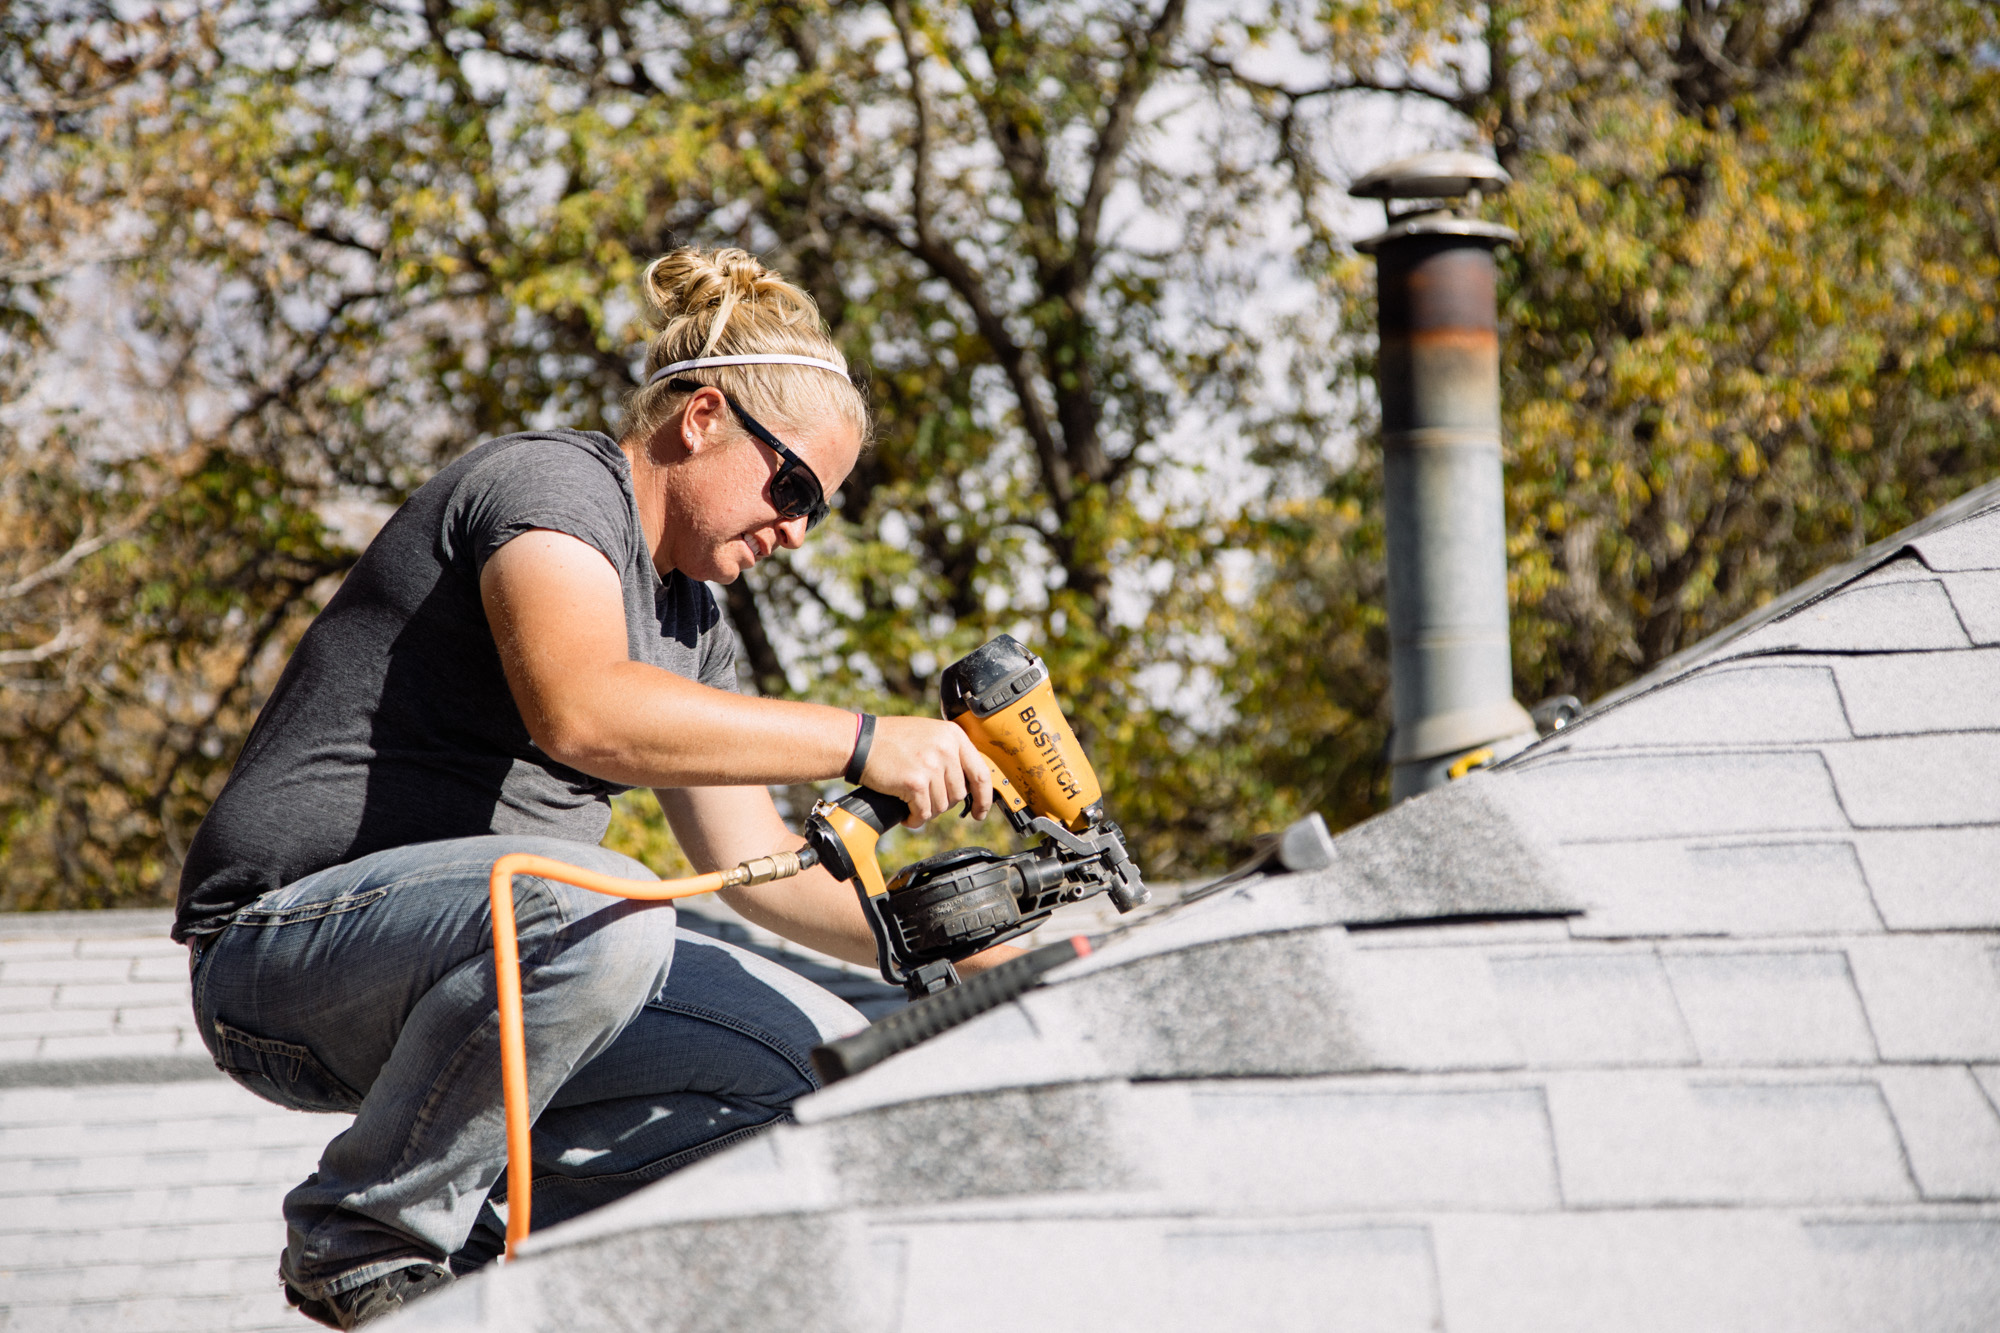 Housing Specialist Steph Crabtree roofing as a part of a Fix It First repair